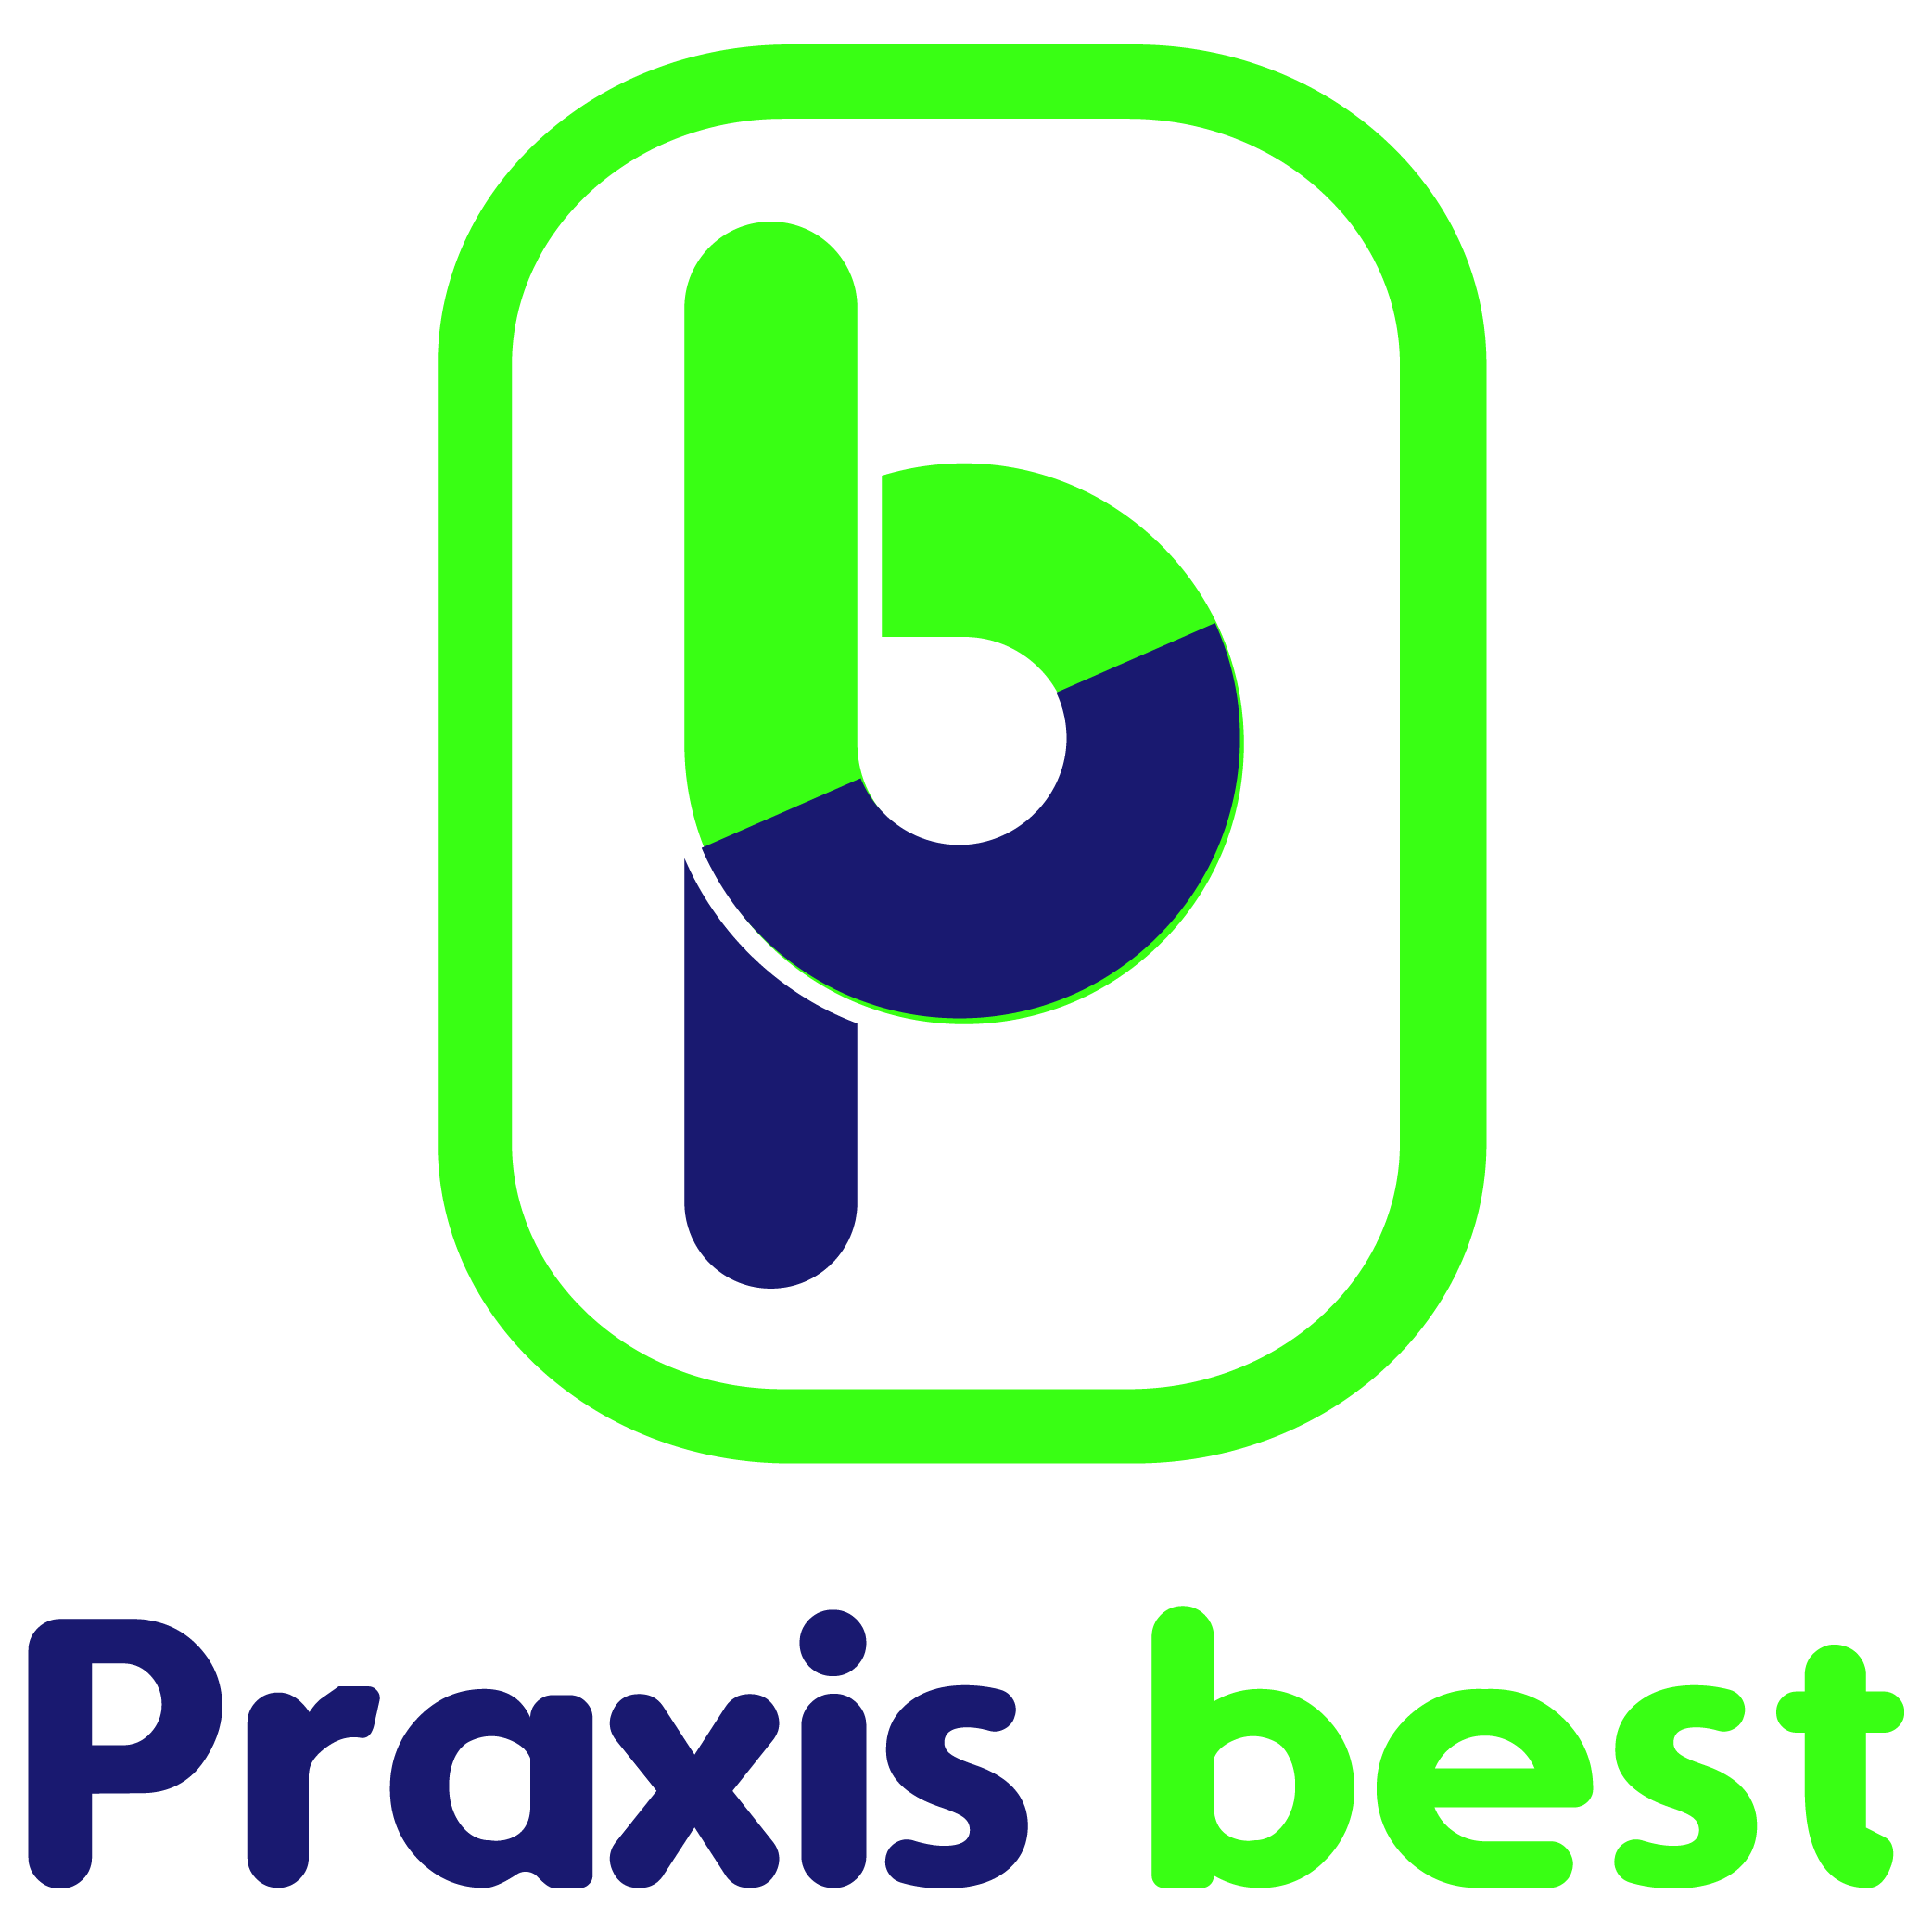 Praxis Best I Medical Praxis Marketing und Design